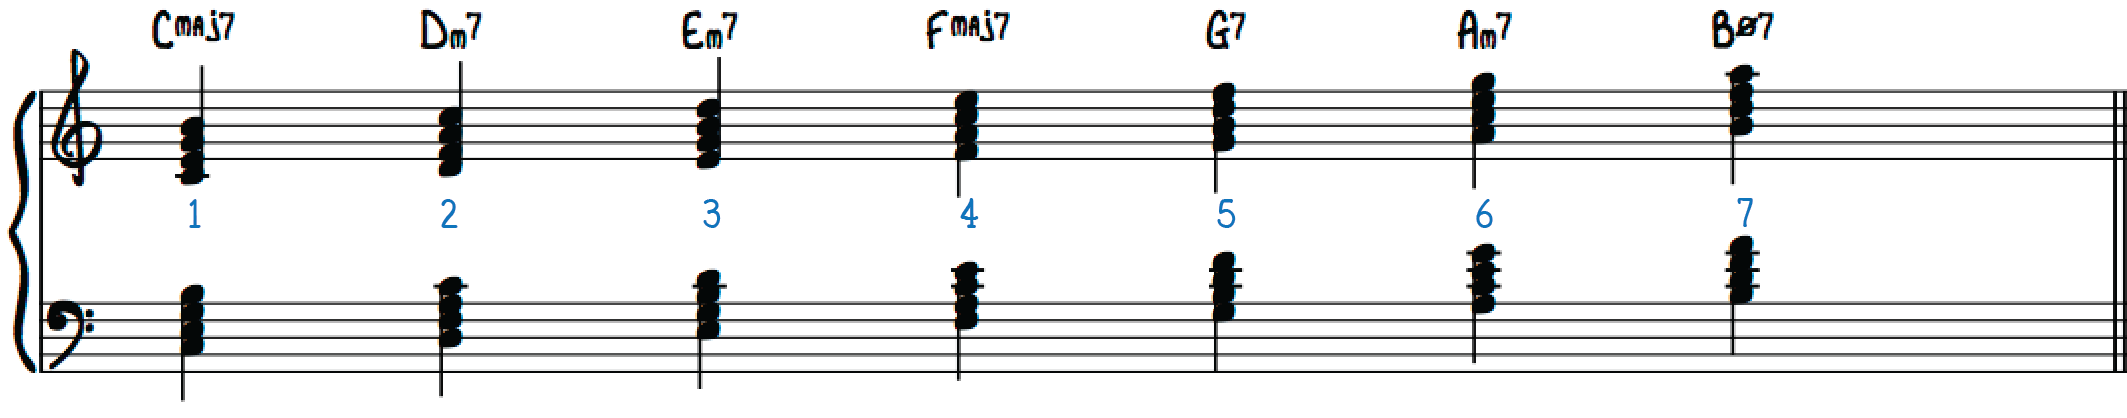 Diatonic 7th Chords in C Major right hand left hand treble clef bass clef grand staff harmonic function analysis number system music theory